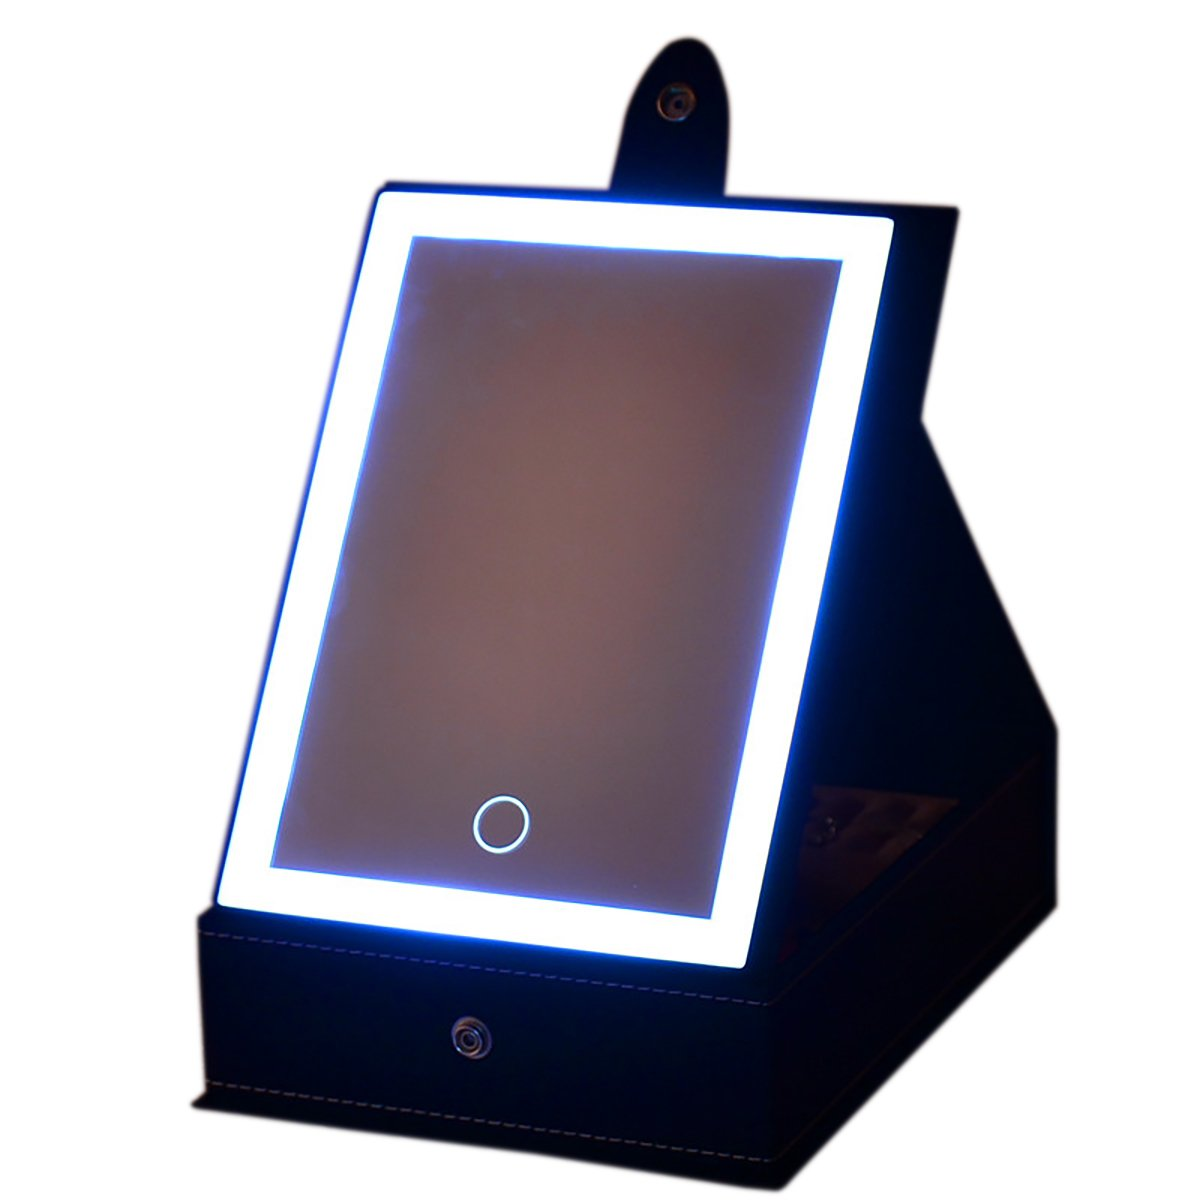 Omeet LED Lighted Makeup Mirror with Storage Box for Cosmetics and Jewelry Storage - USB and Battery Operated by Omeet (Image #1)